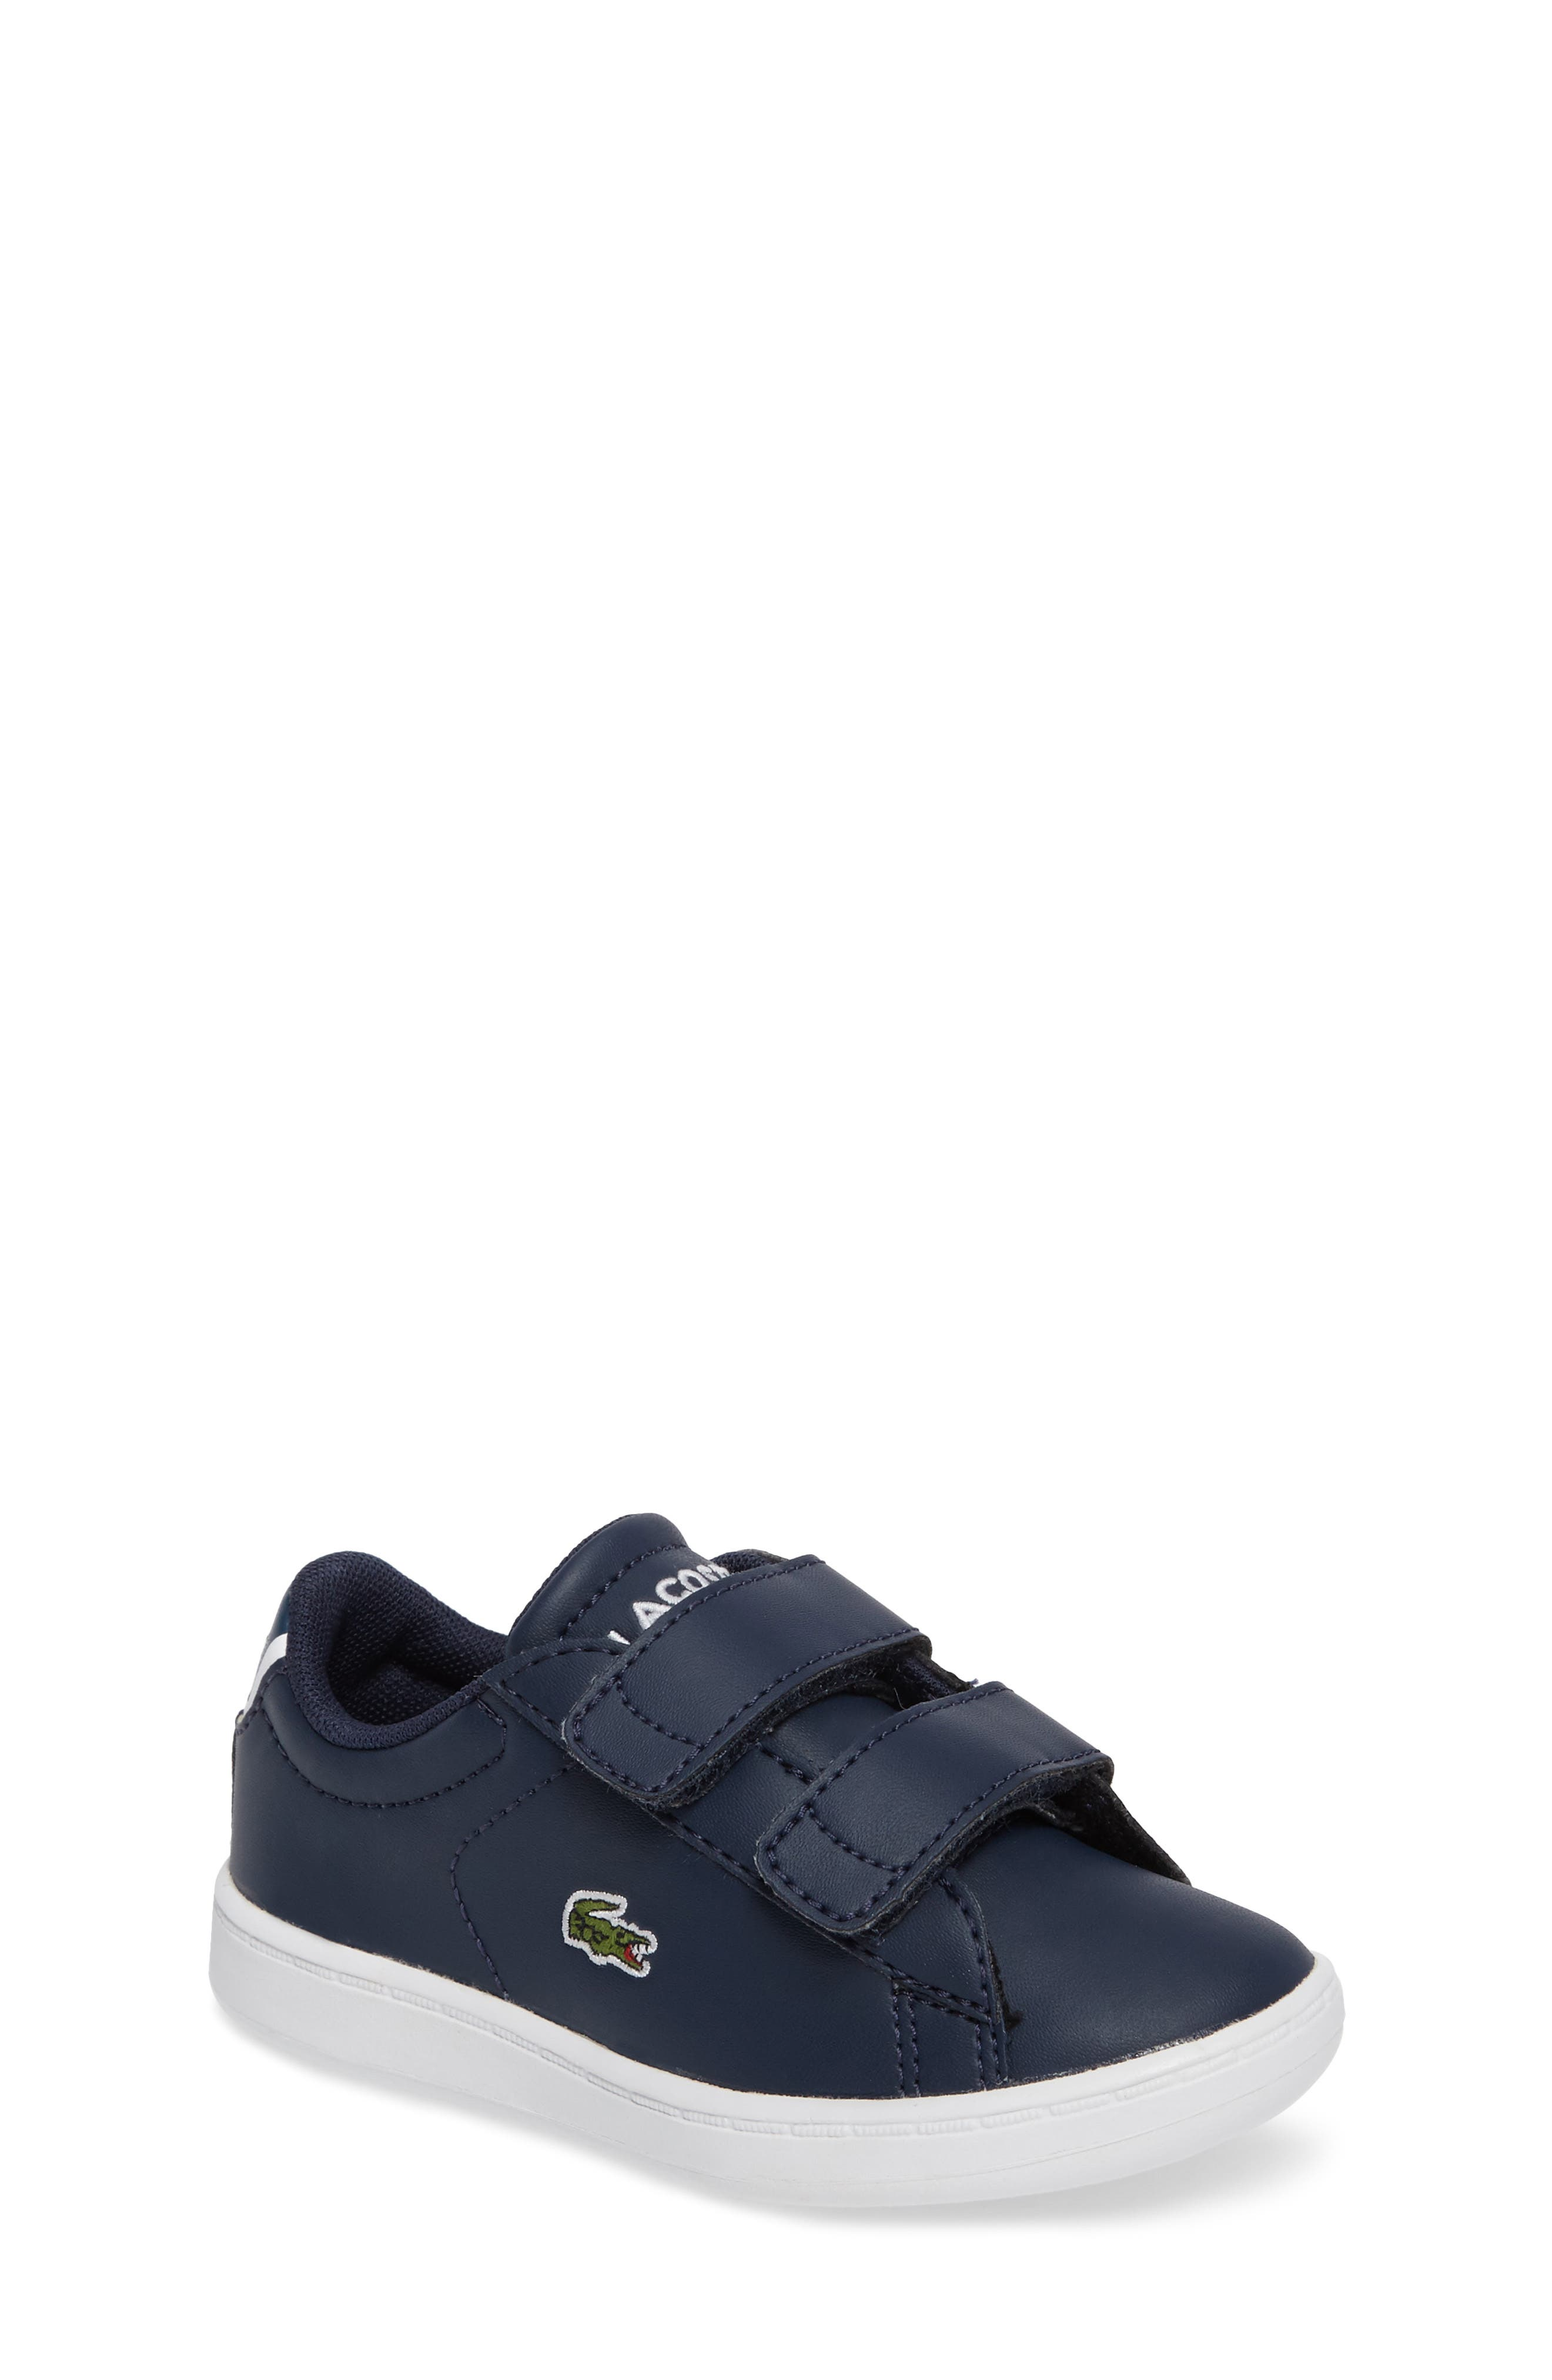 Carnaby Evo Sneaker,                             Main thumbnail 1, color,                             Navy